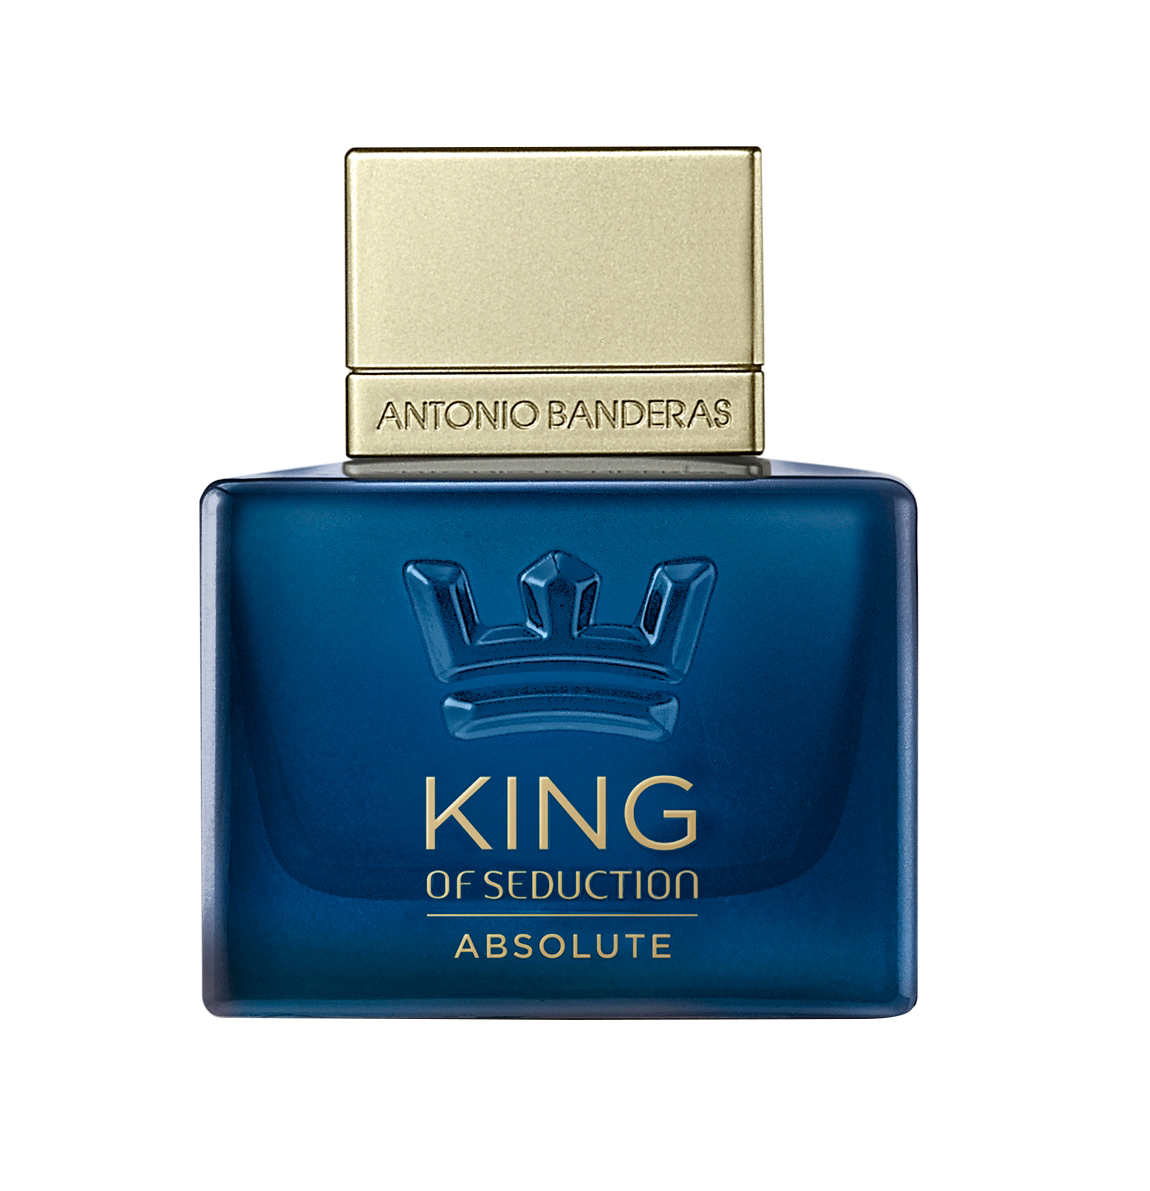 Perfume Antonio Banderas King Of Seduction Absolute Eau De Toilette Perfume 50 Ml